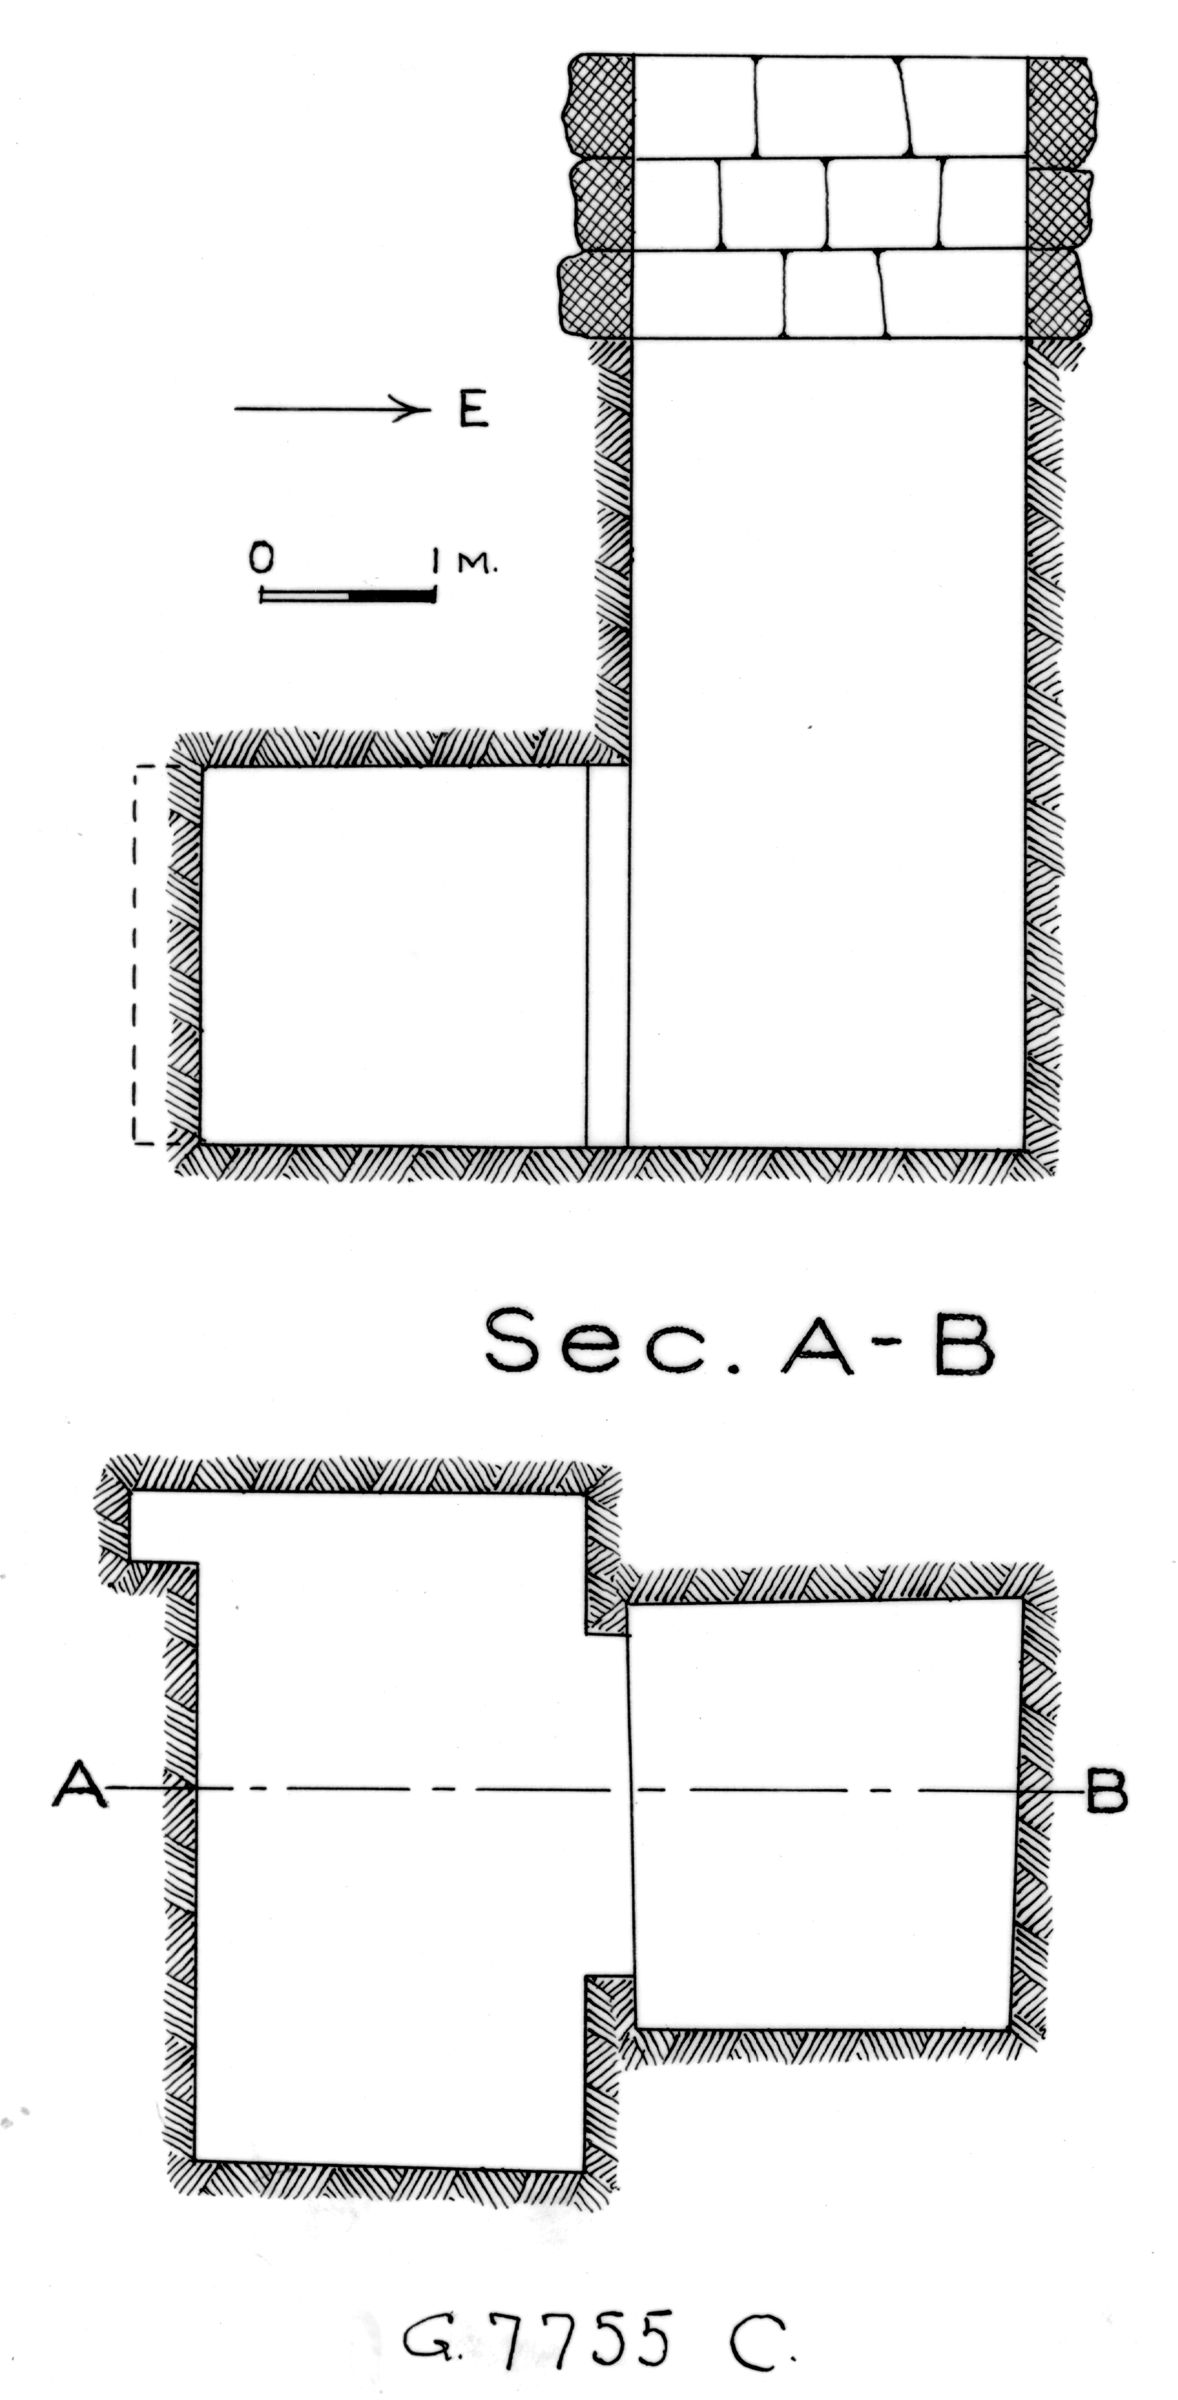 Maps and plans: G 7755, Shaft C